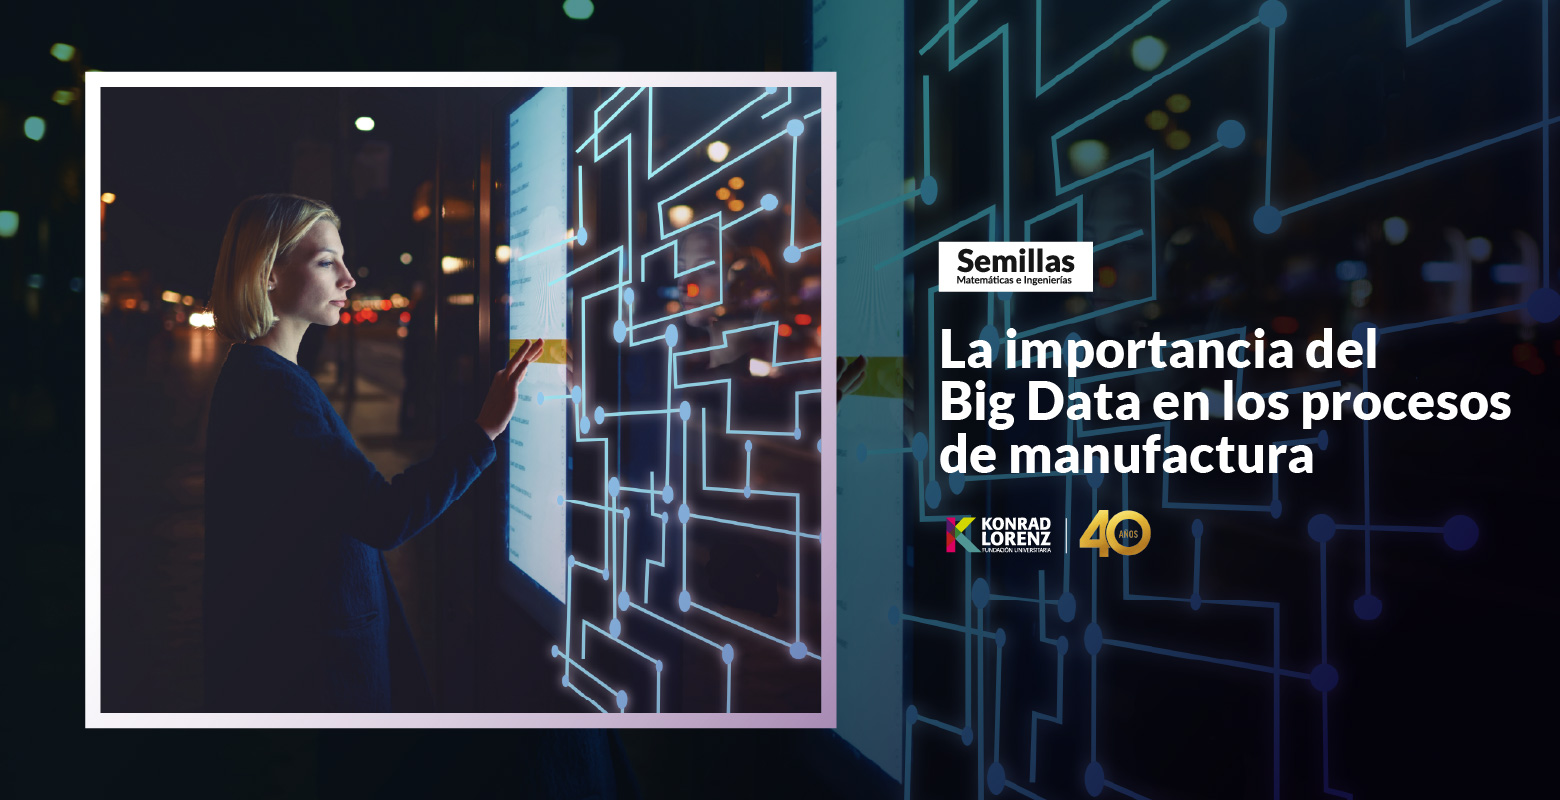 La importancia del Big Data en los procesos de manufactura